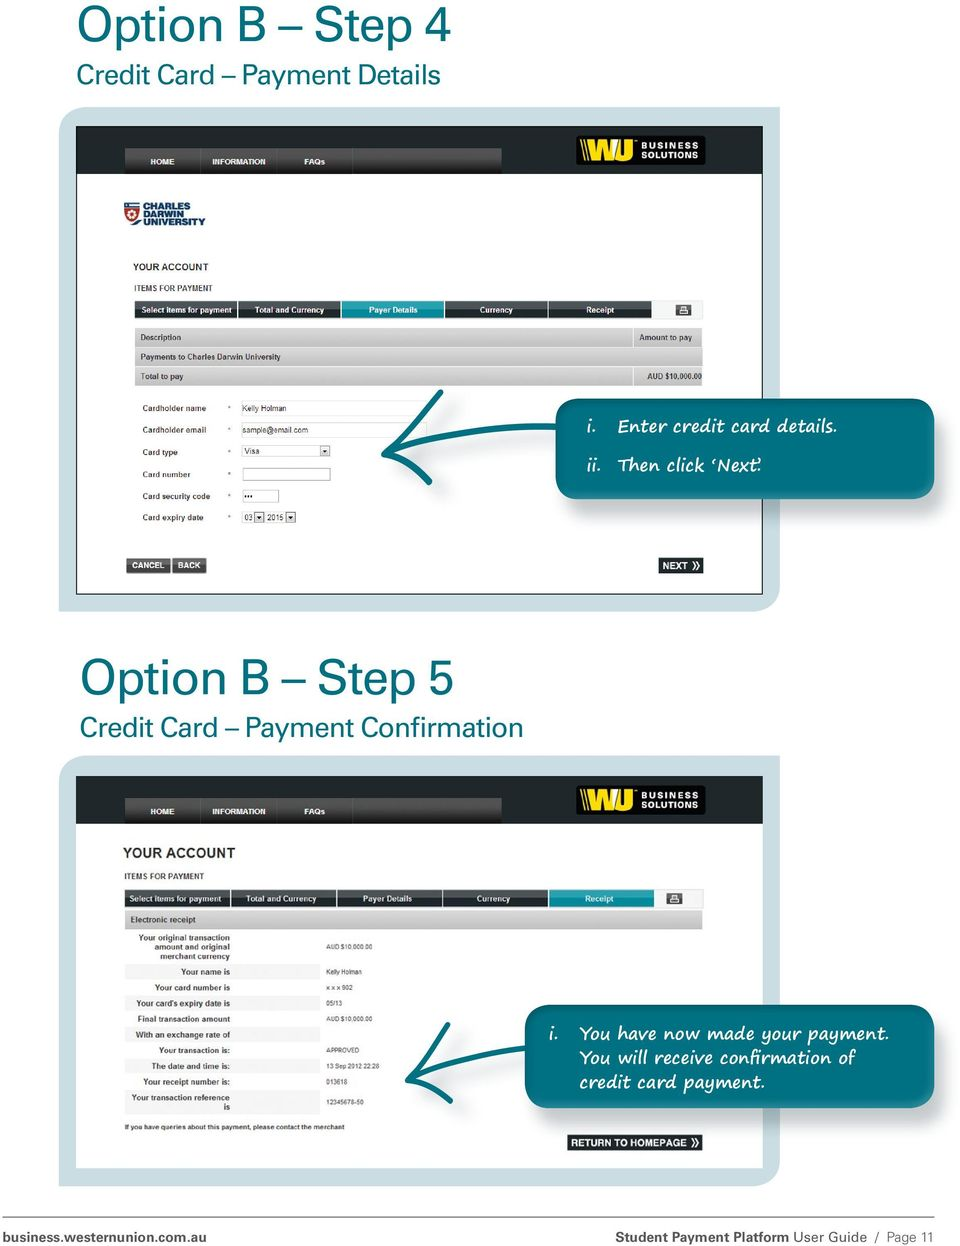 Option B Step 5 Credit Card Payment Confirmation i.